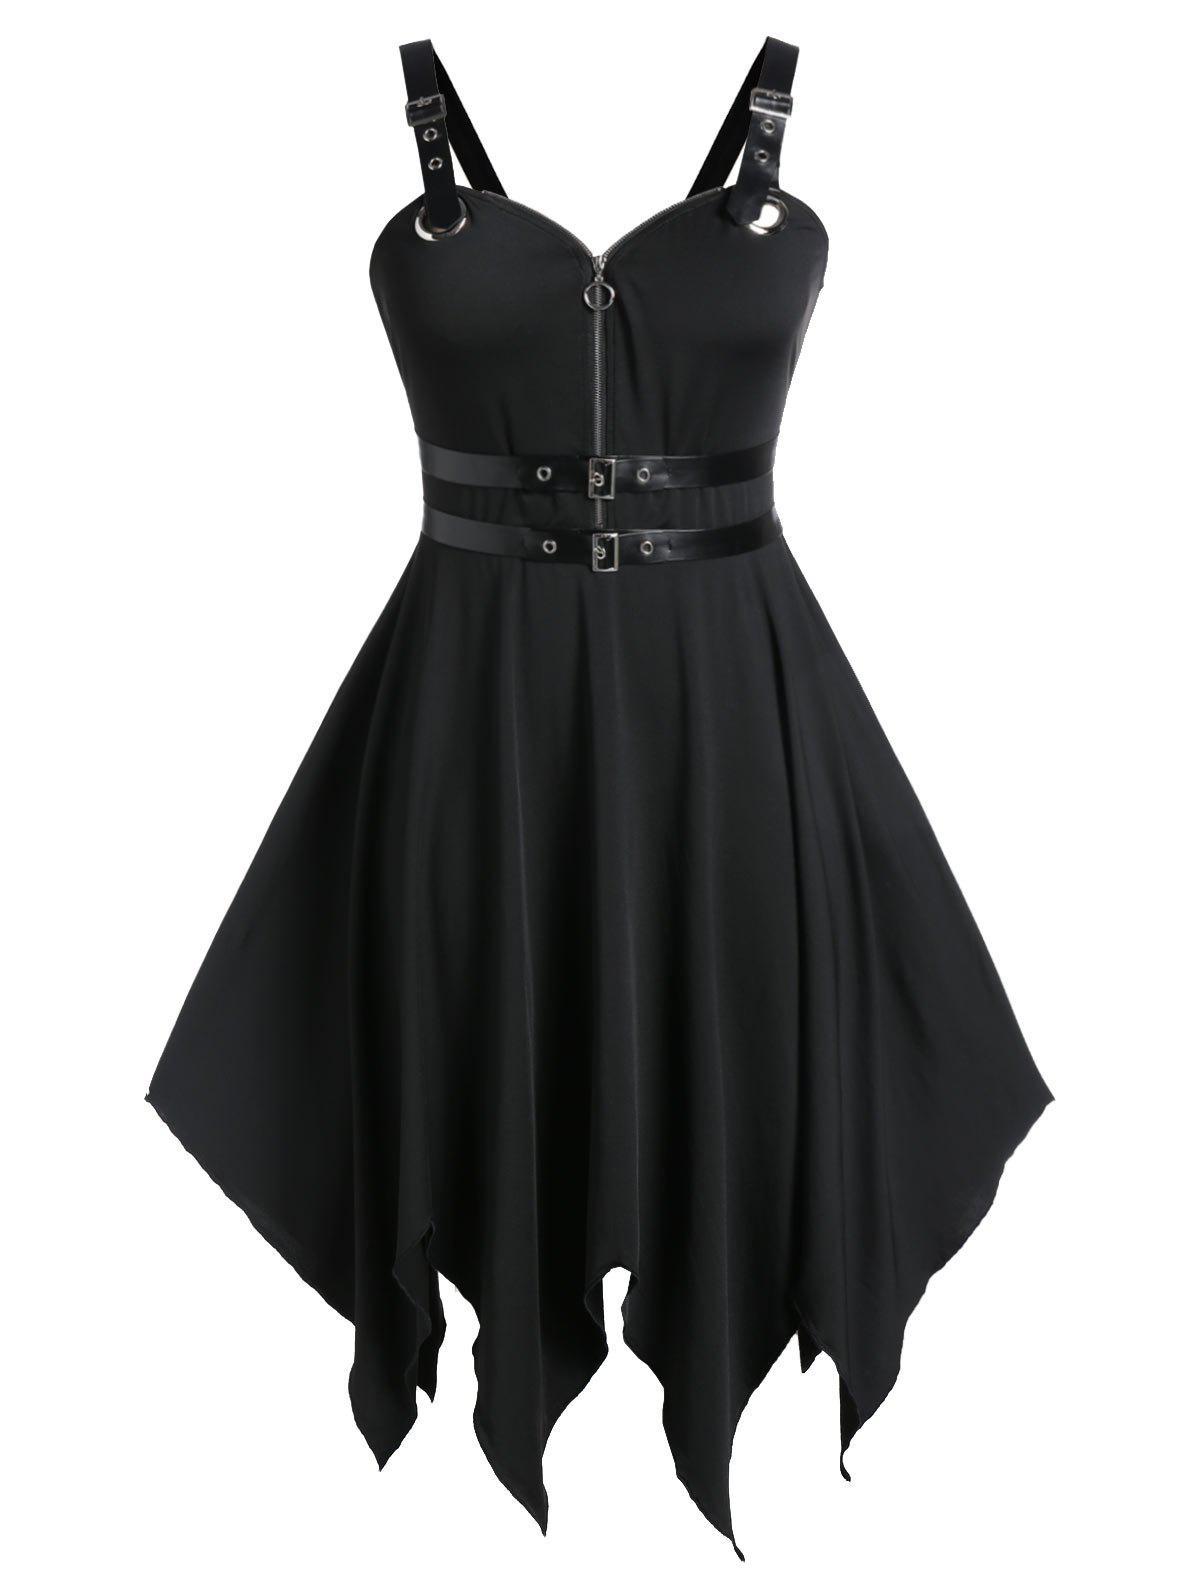 New Plus Size Handkerchief Buckle PU Trims Gothic Halloween Dress